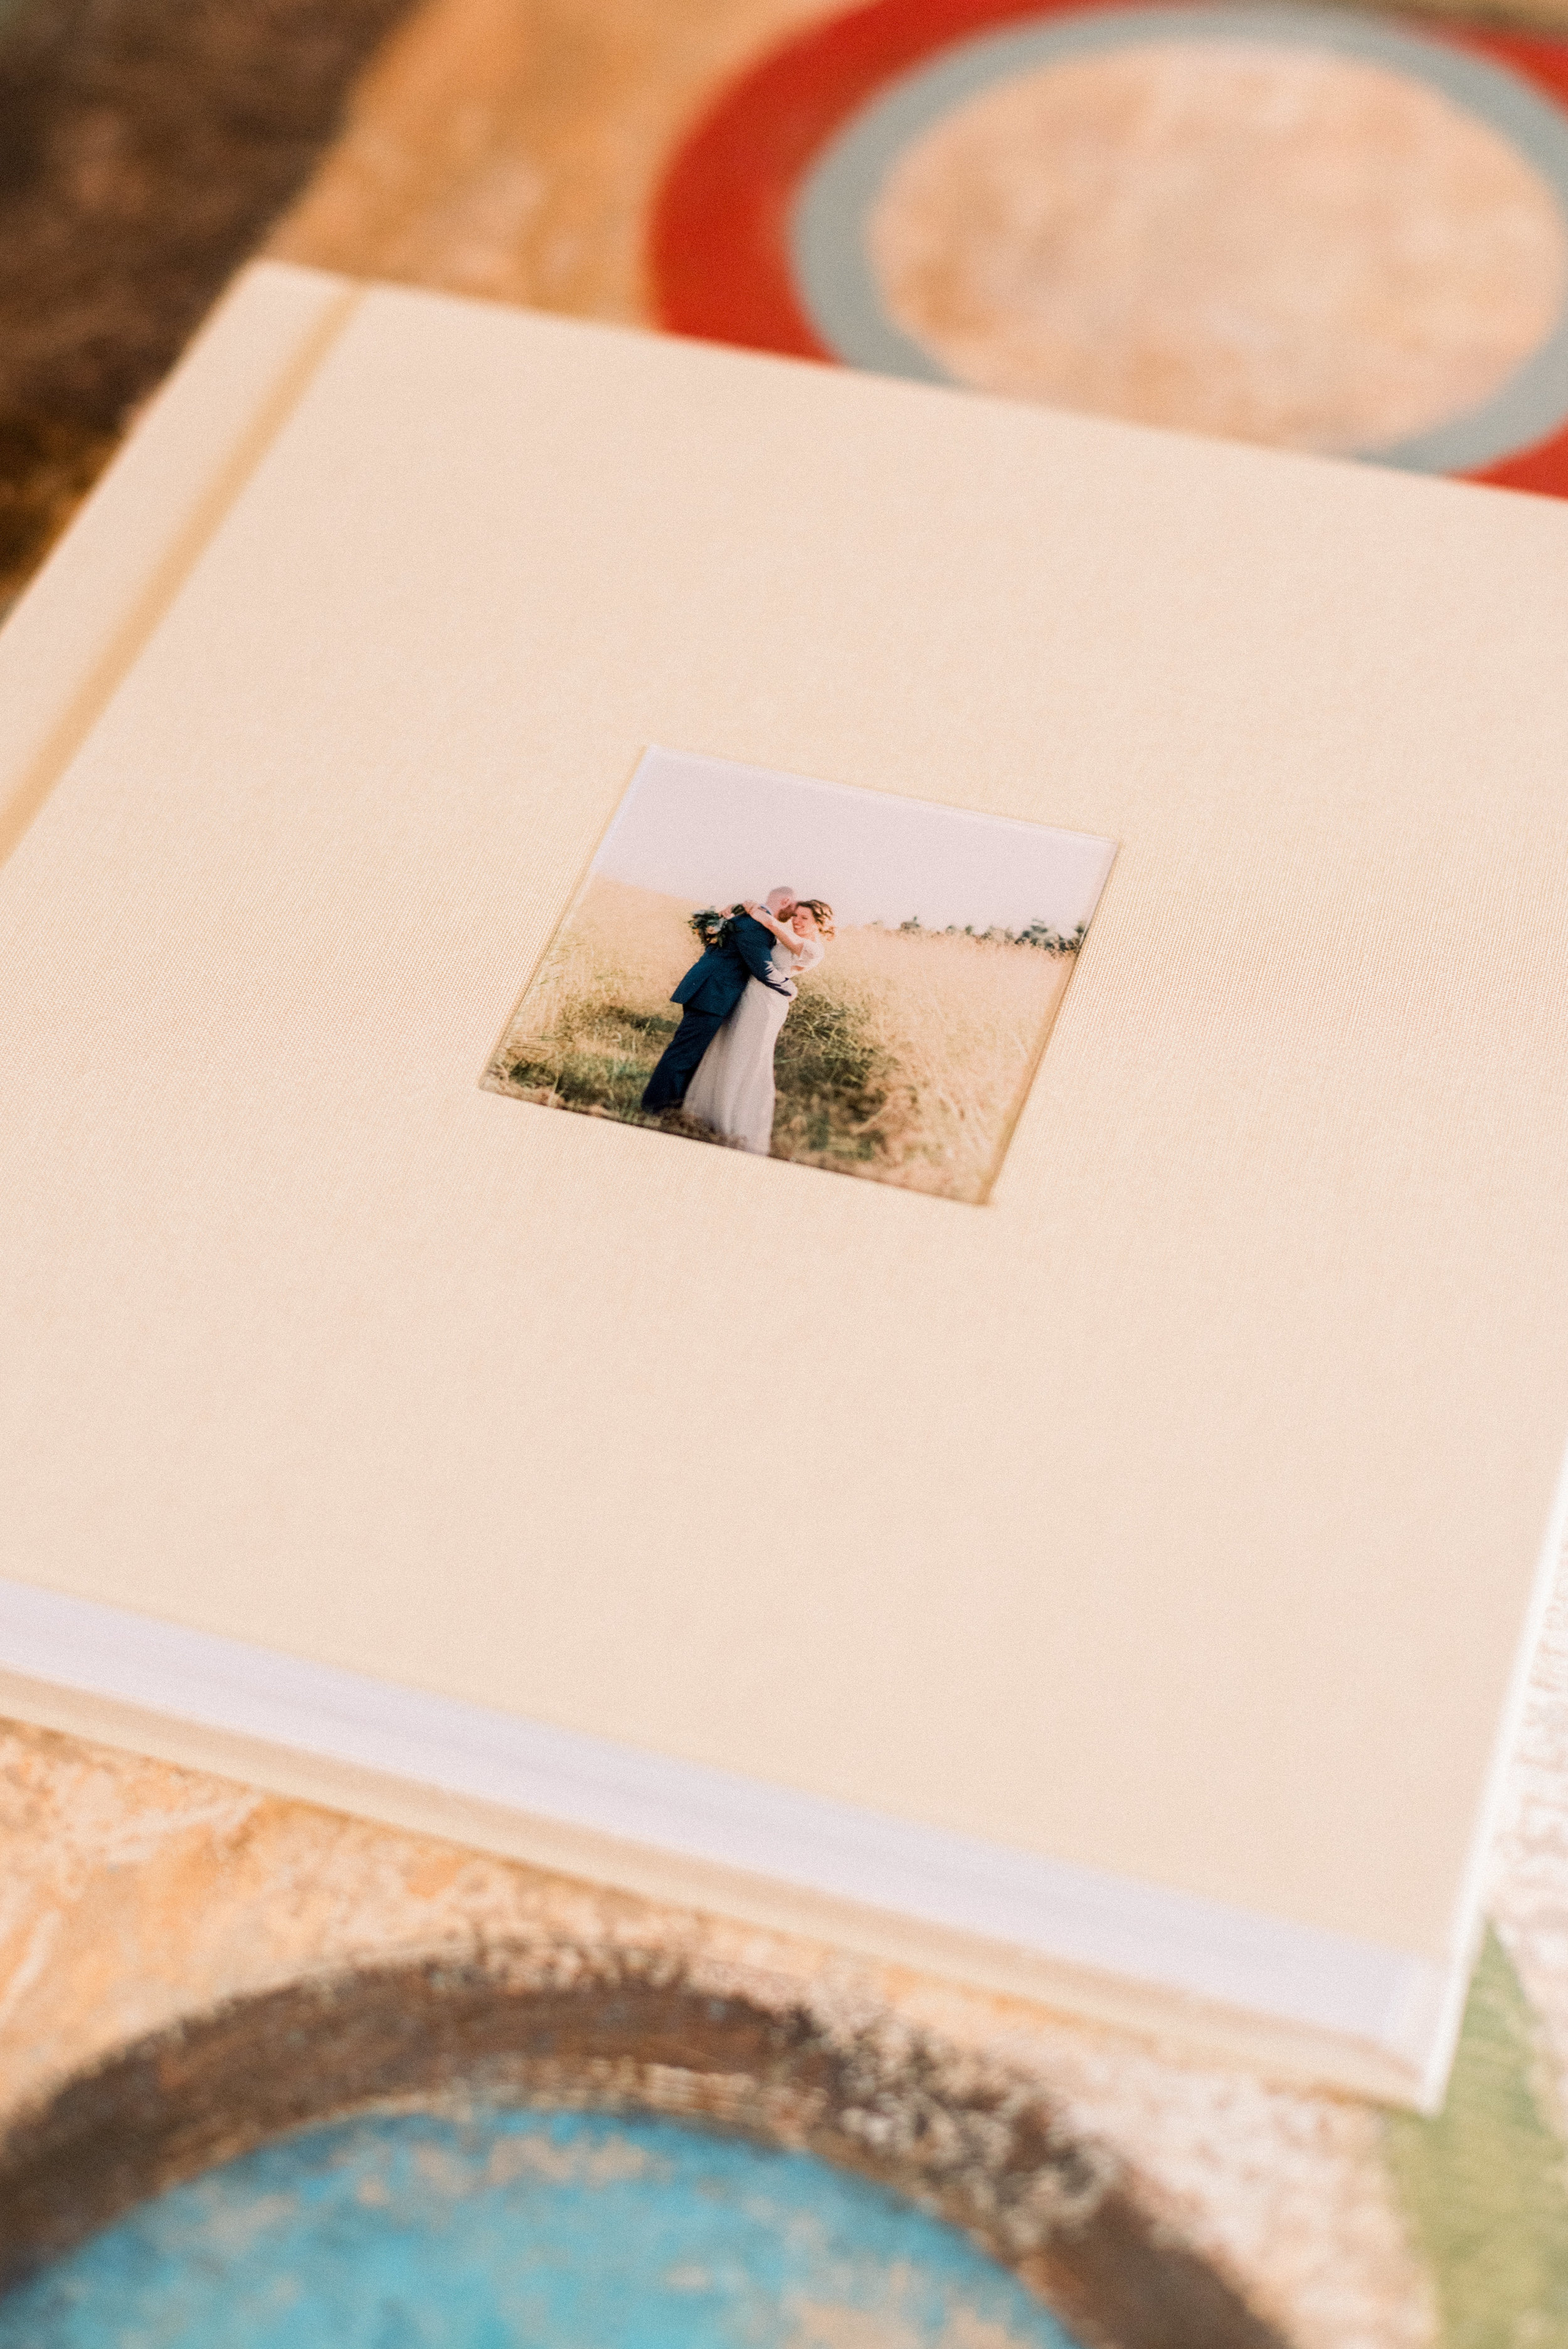 Blu Moose Photography-Products-Albums-USB-Prints-Keepsake Boxes-Photos-04.jpg